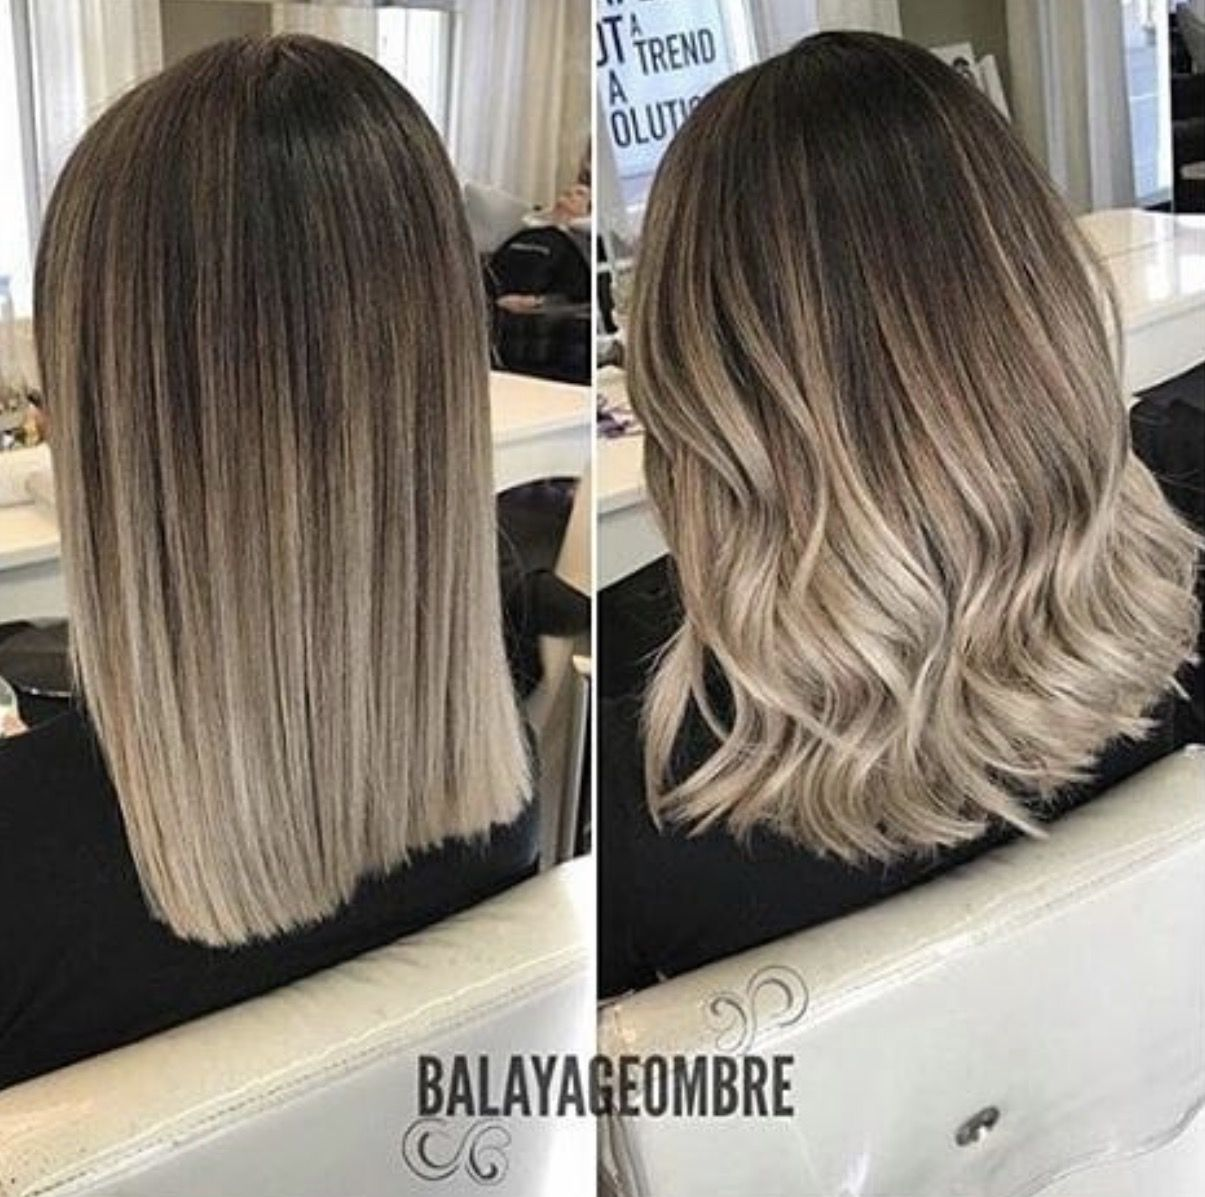 Pin by Haley Jones on Hair inspo